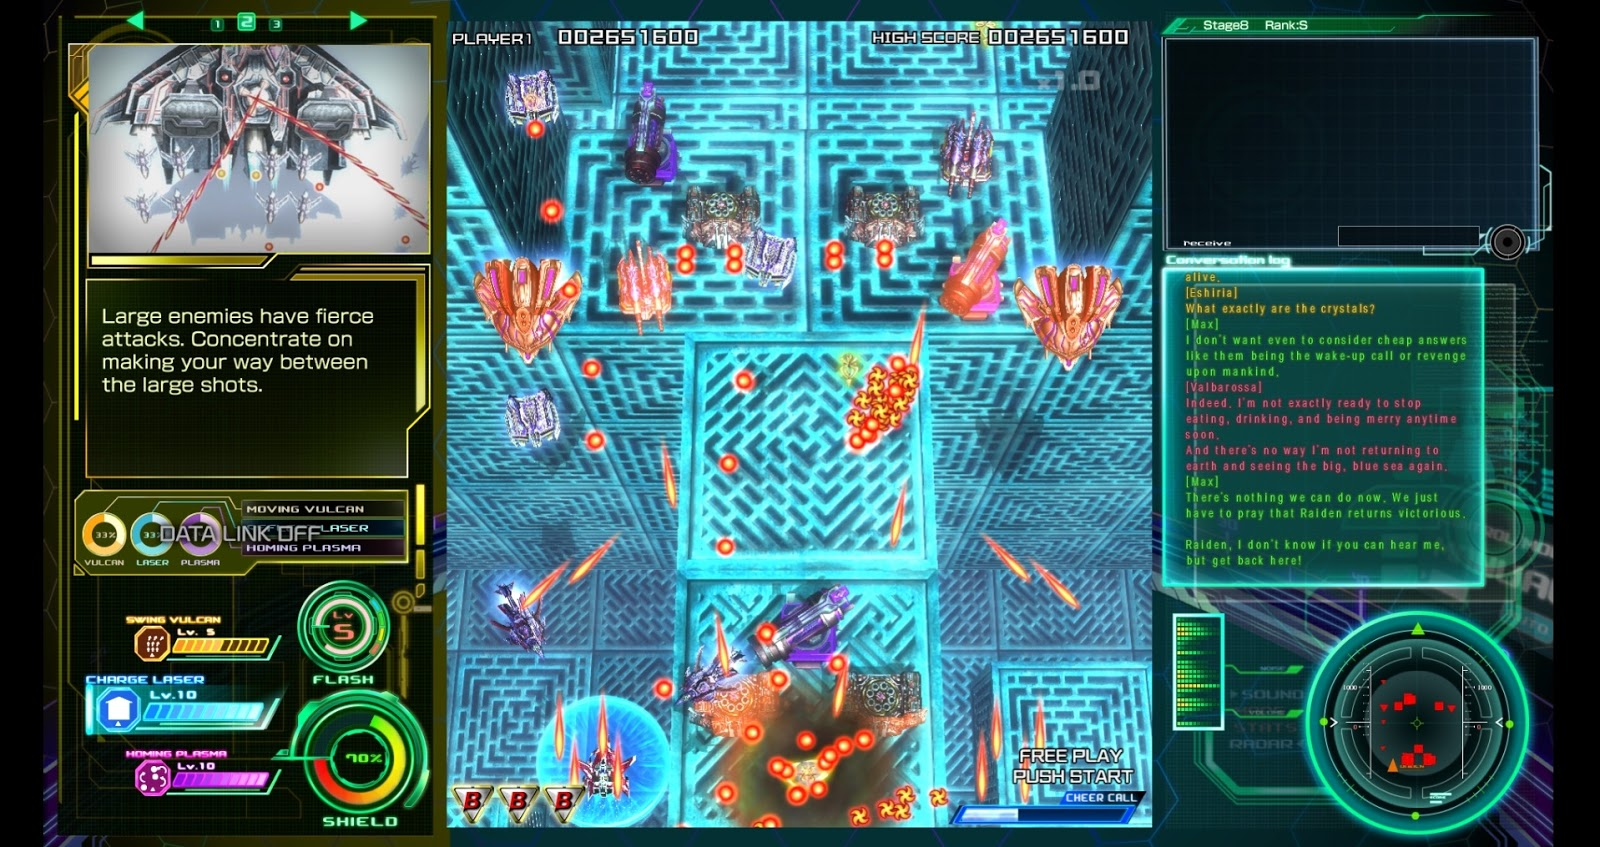 raiden v director s cut the ui is too busy and has unnecessary information